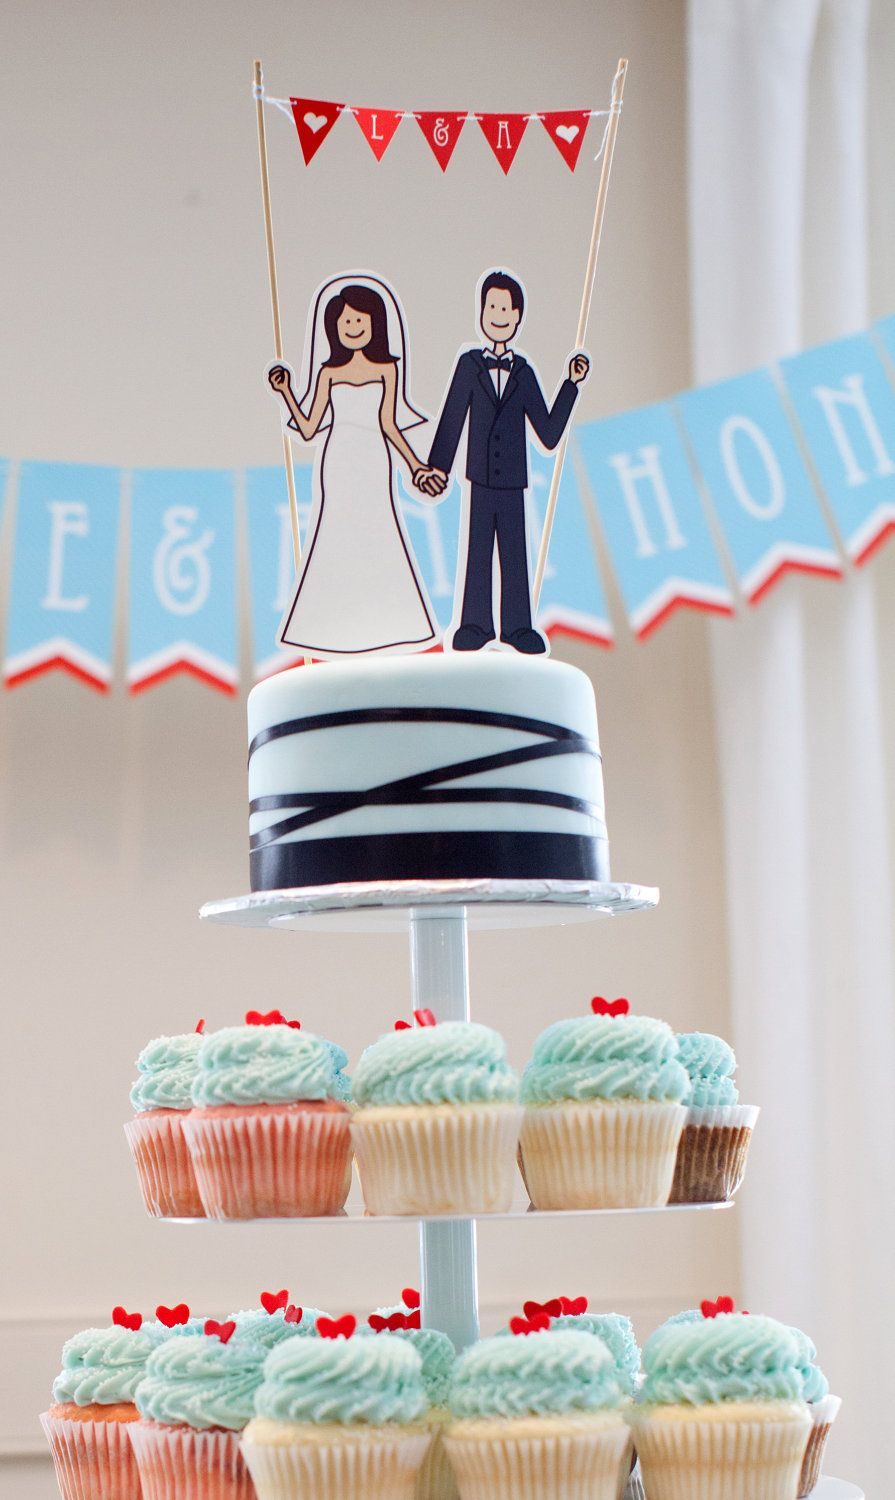 Ilrated Cake Topper And Pennant Banner Customizable